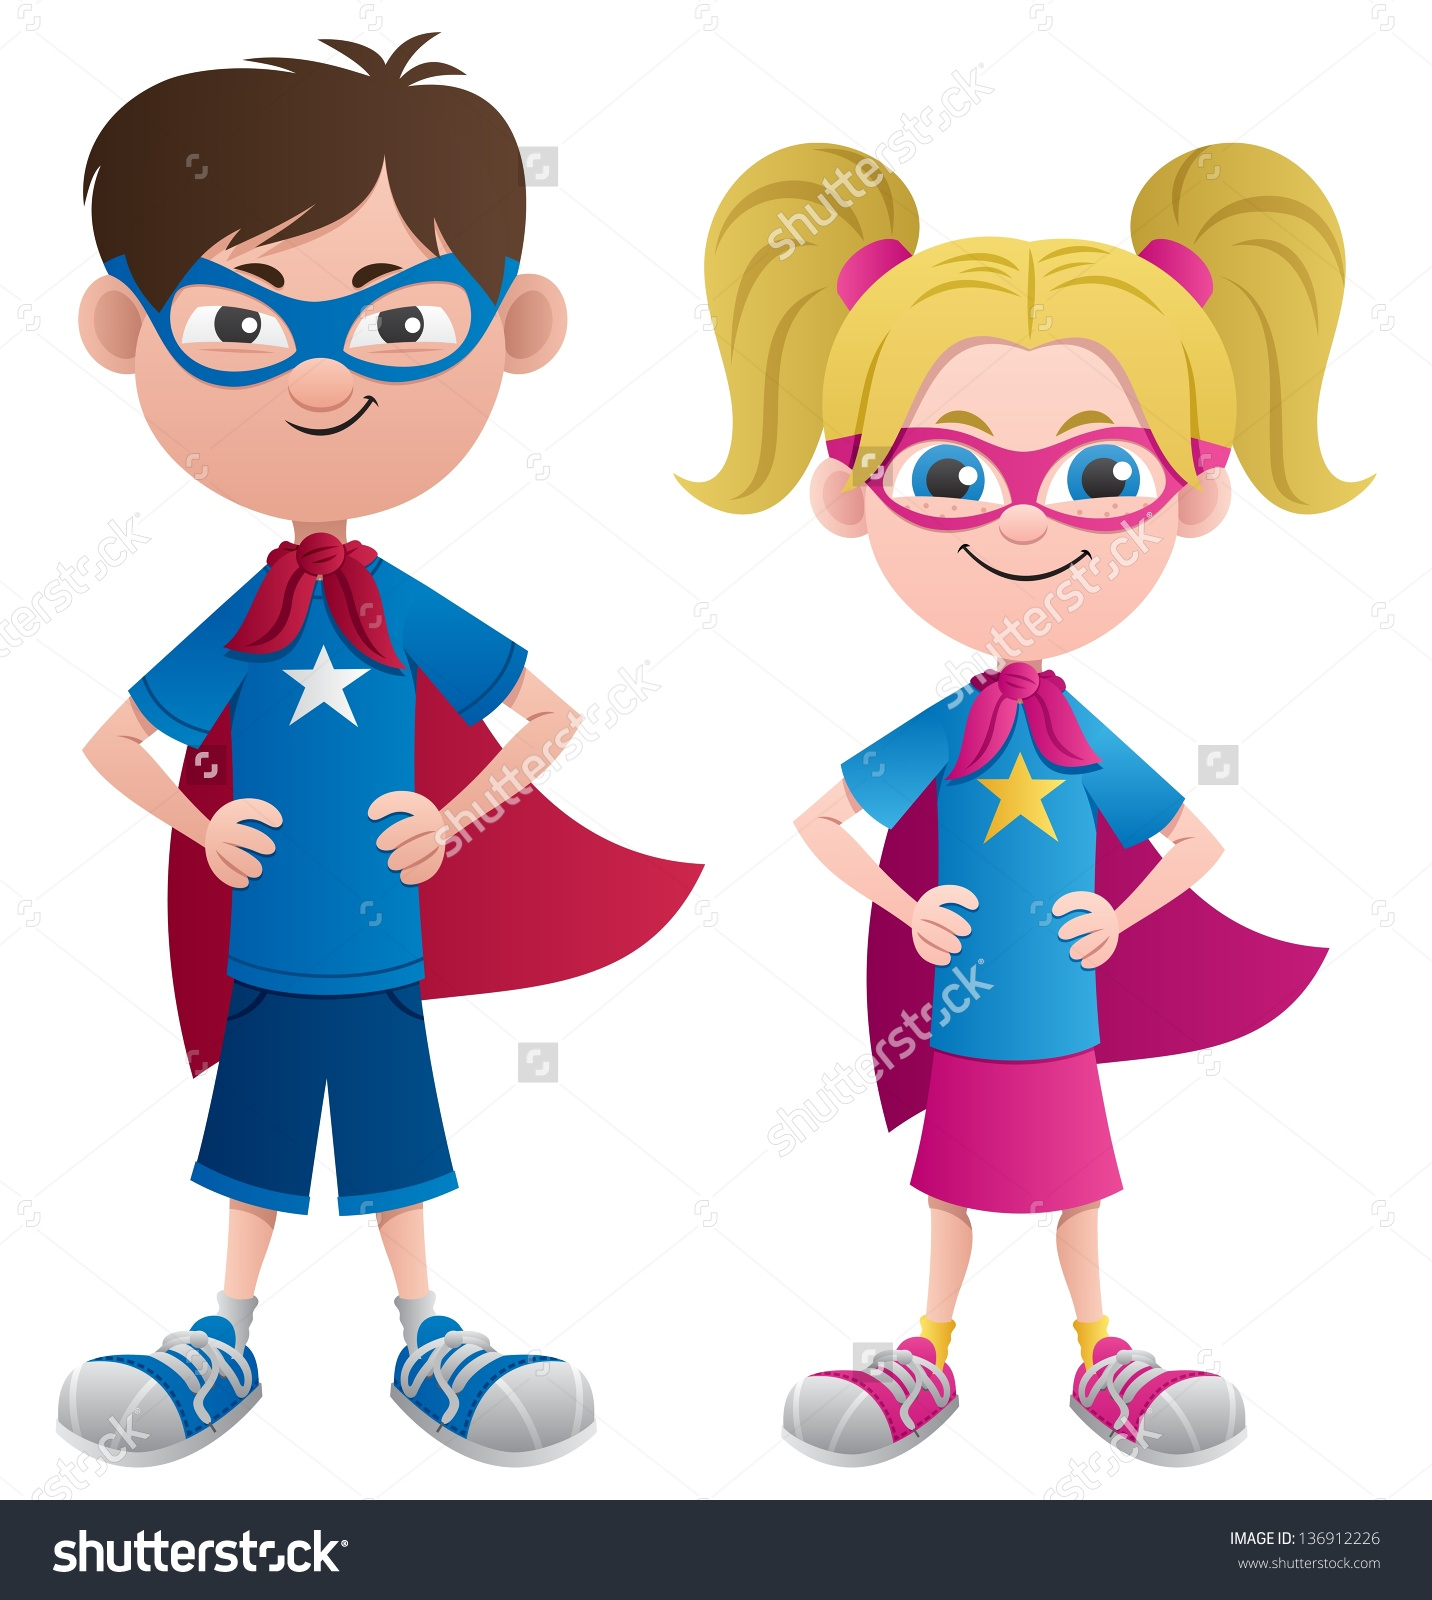 Kids dressing up clipart.